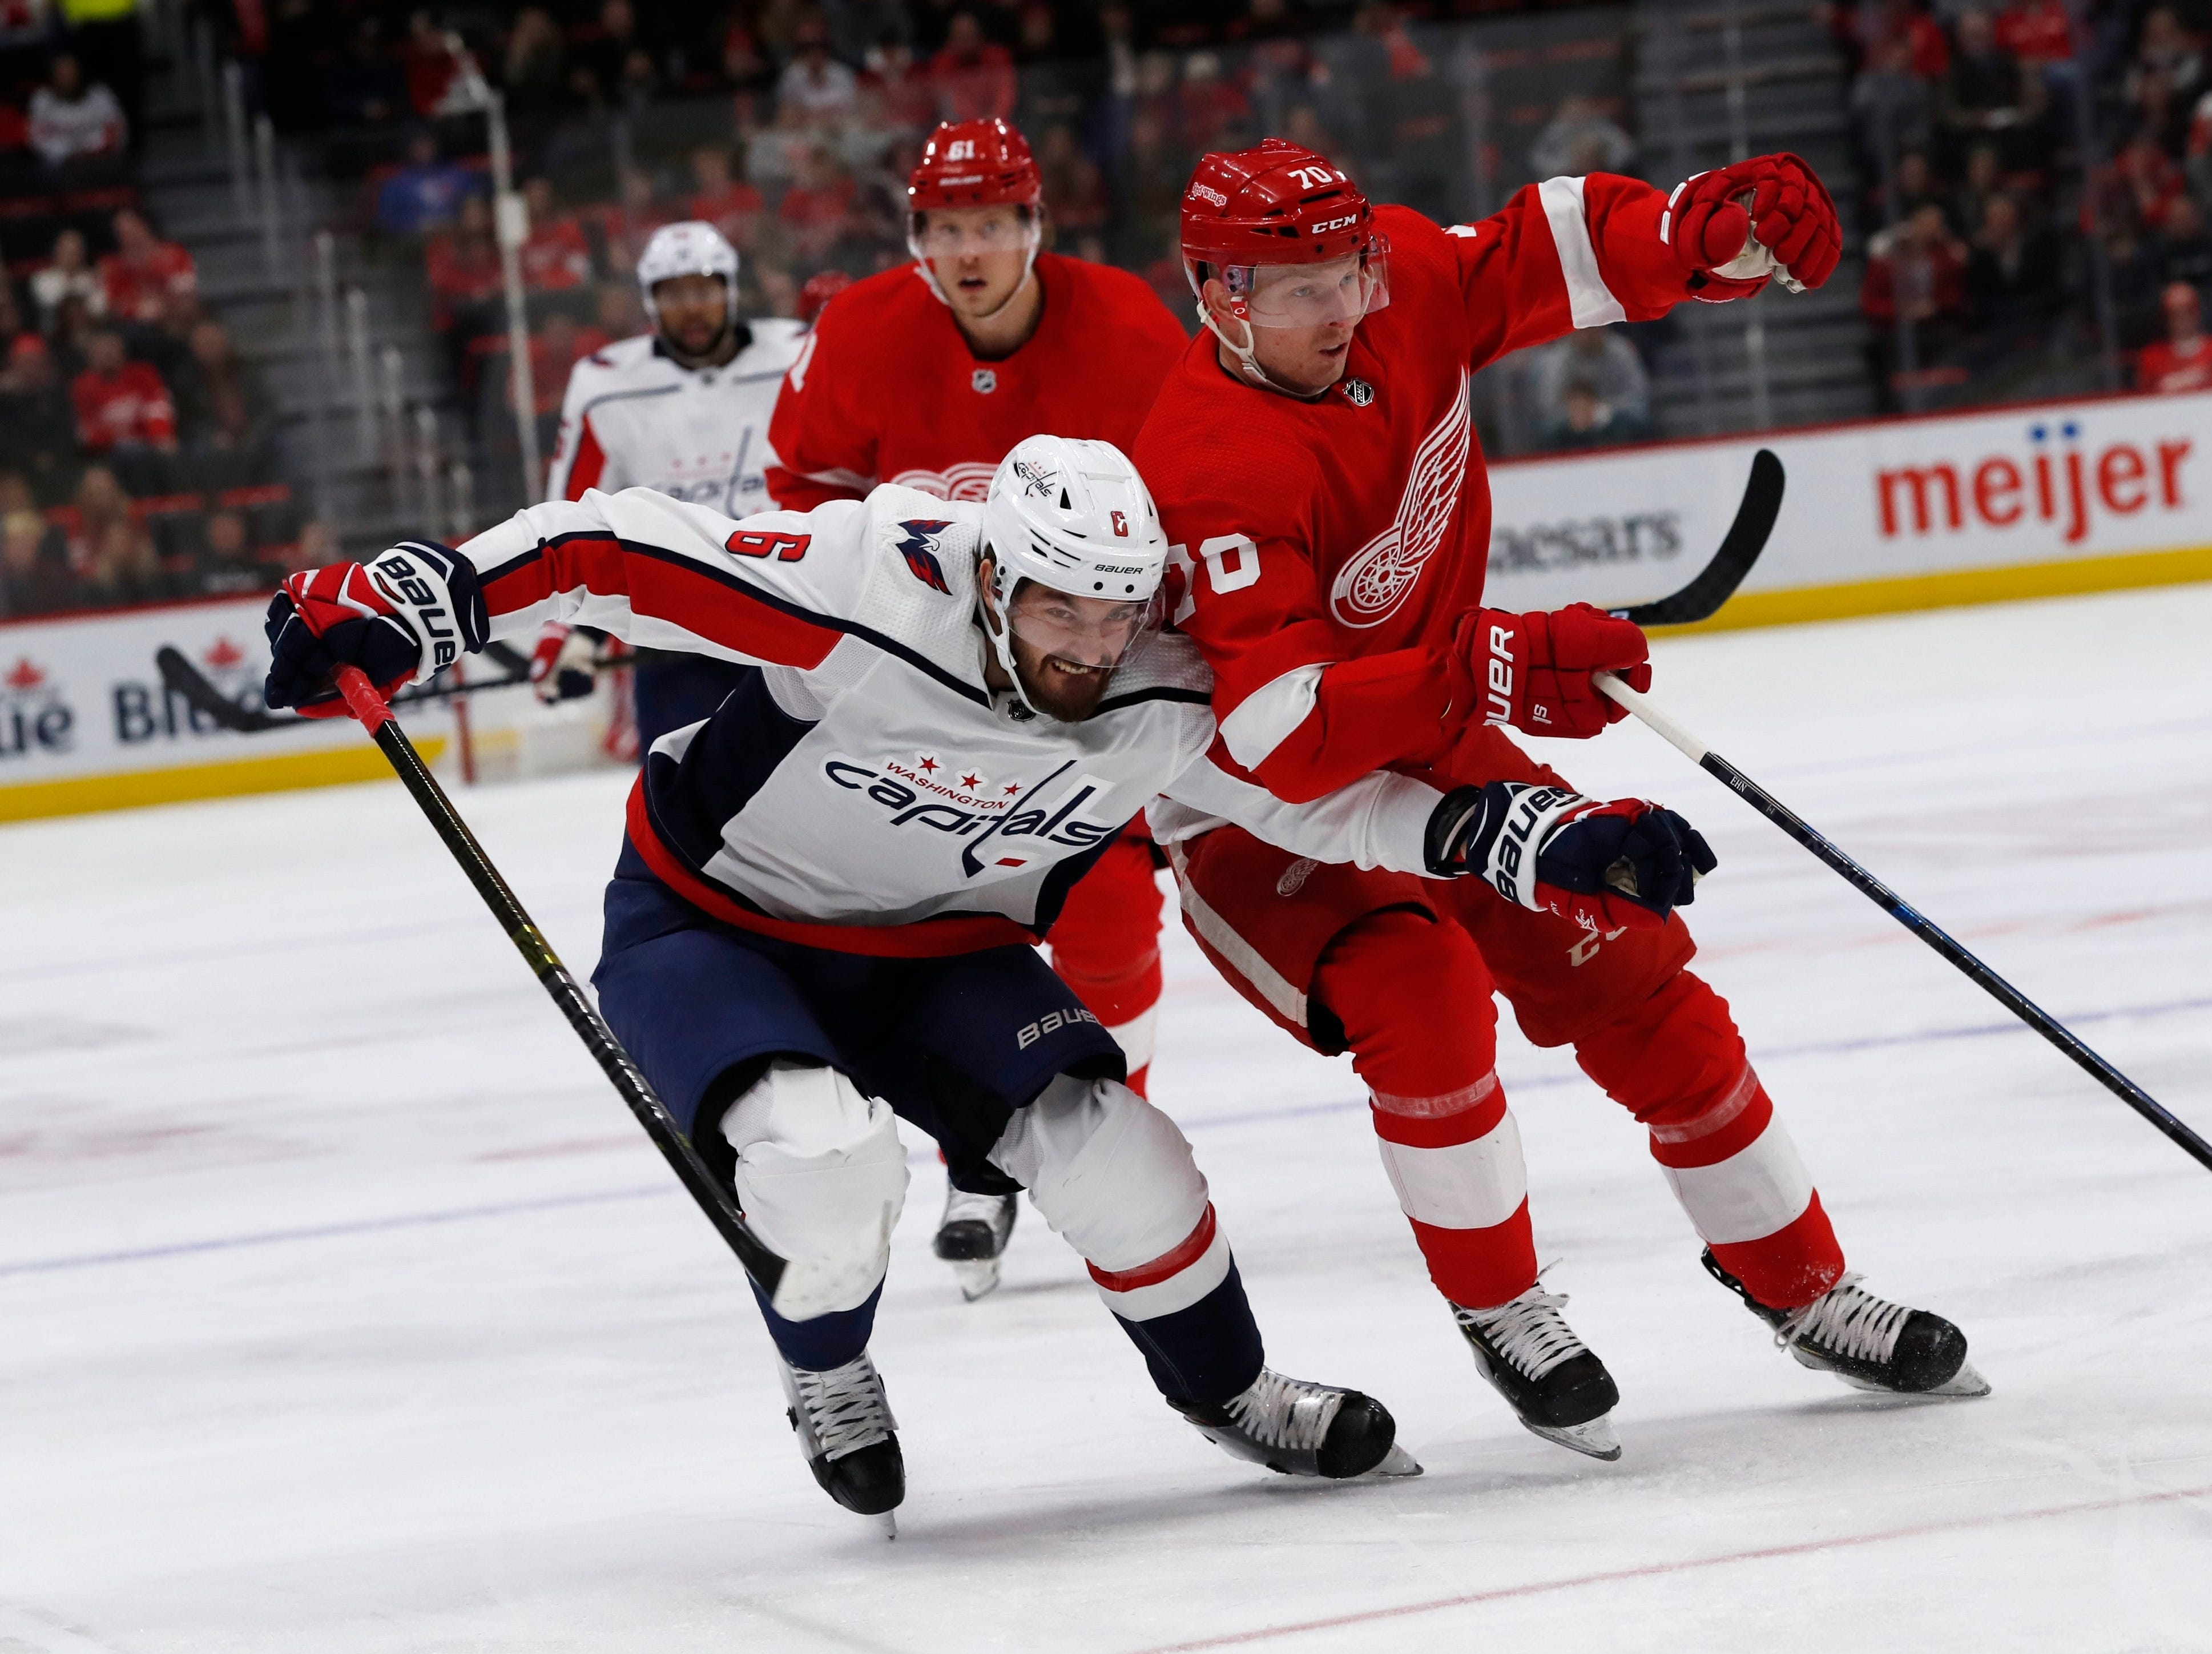 Washington Capitals defenseman Michal Kempny (6) and Detroit Red Wings center Christoffer Ehn (70) chase the puck during the first period.